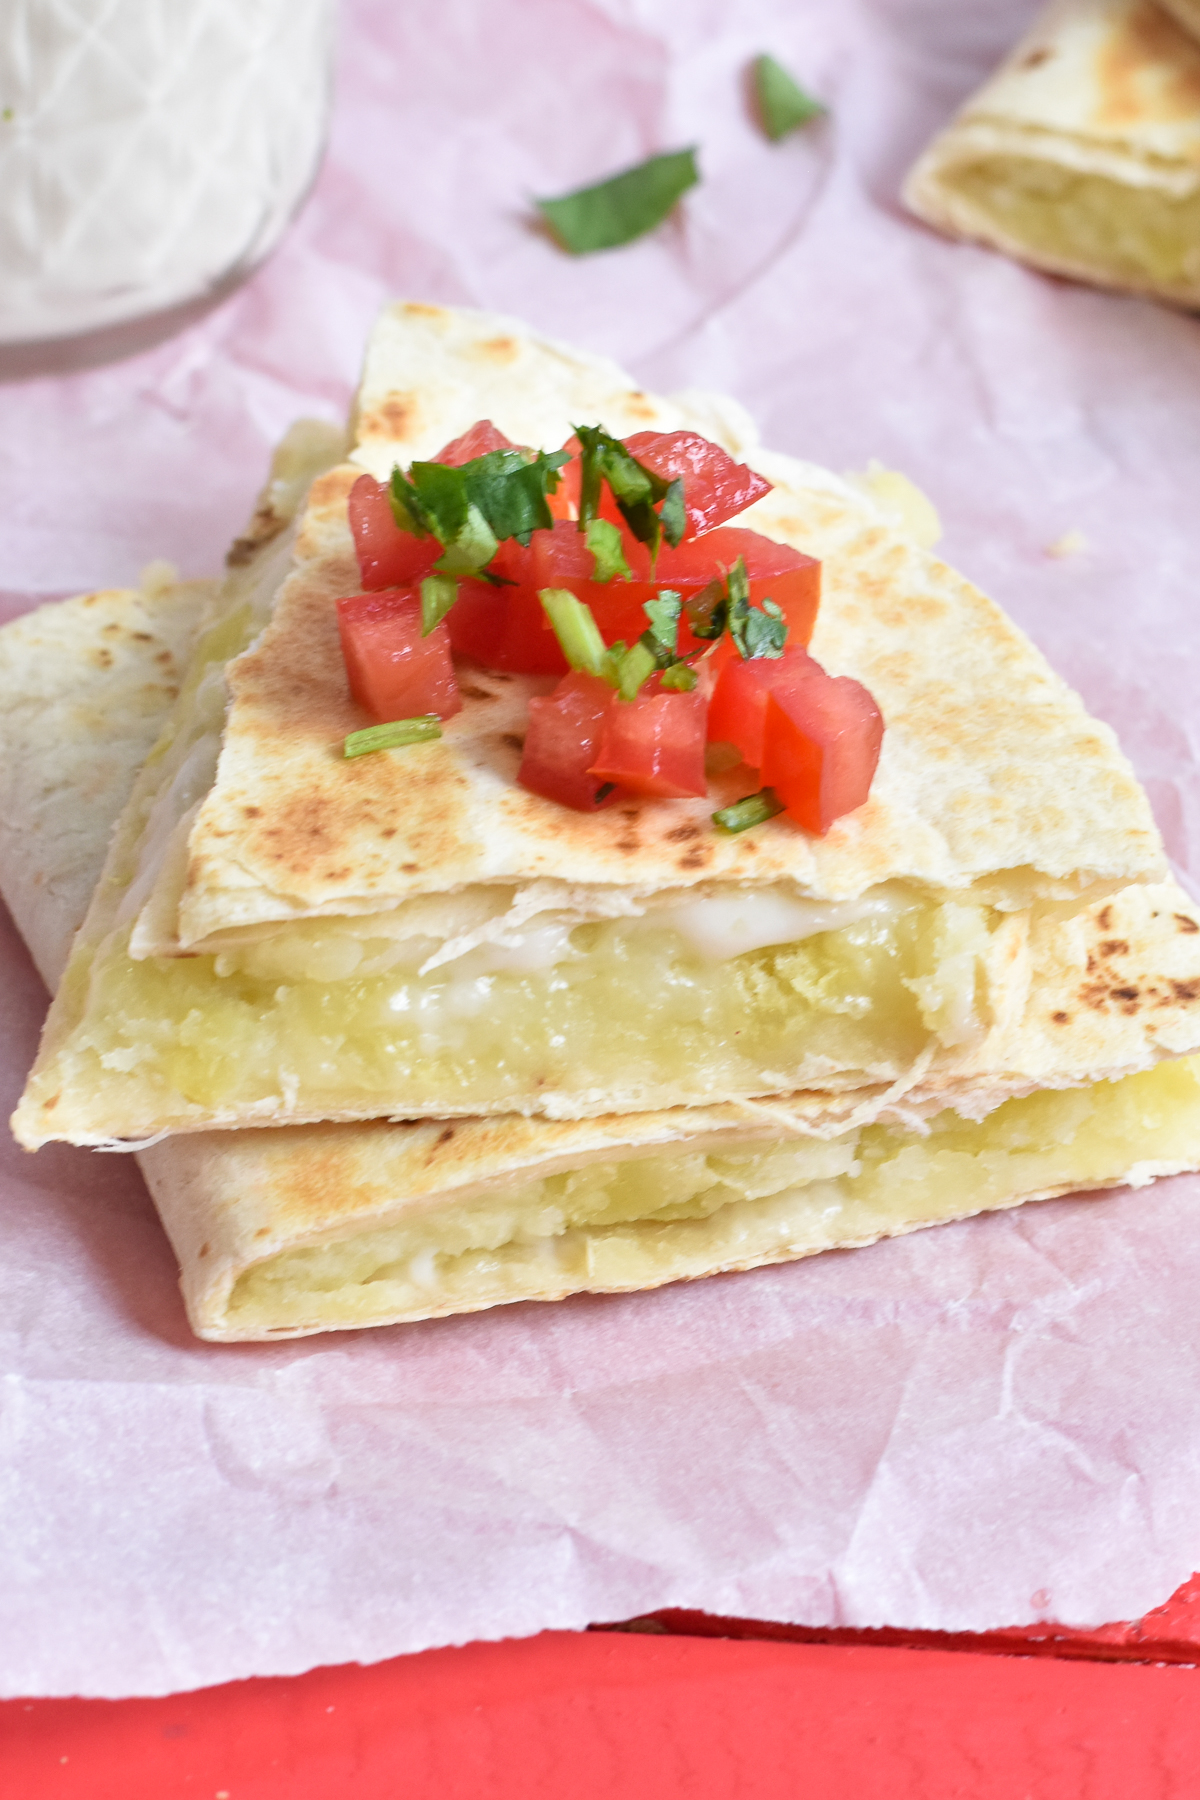 Quick and easy vegan quesadilla with potatoes. An easy recipe when you are short on time. #vegan #VeganMexican #quesadilla #easyrecipes #food #kidfriendly #dairyfree #potatoes